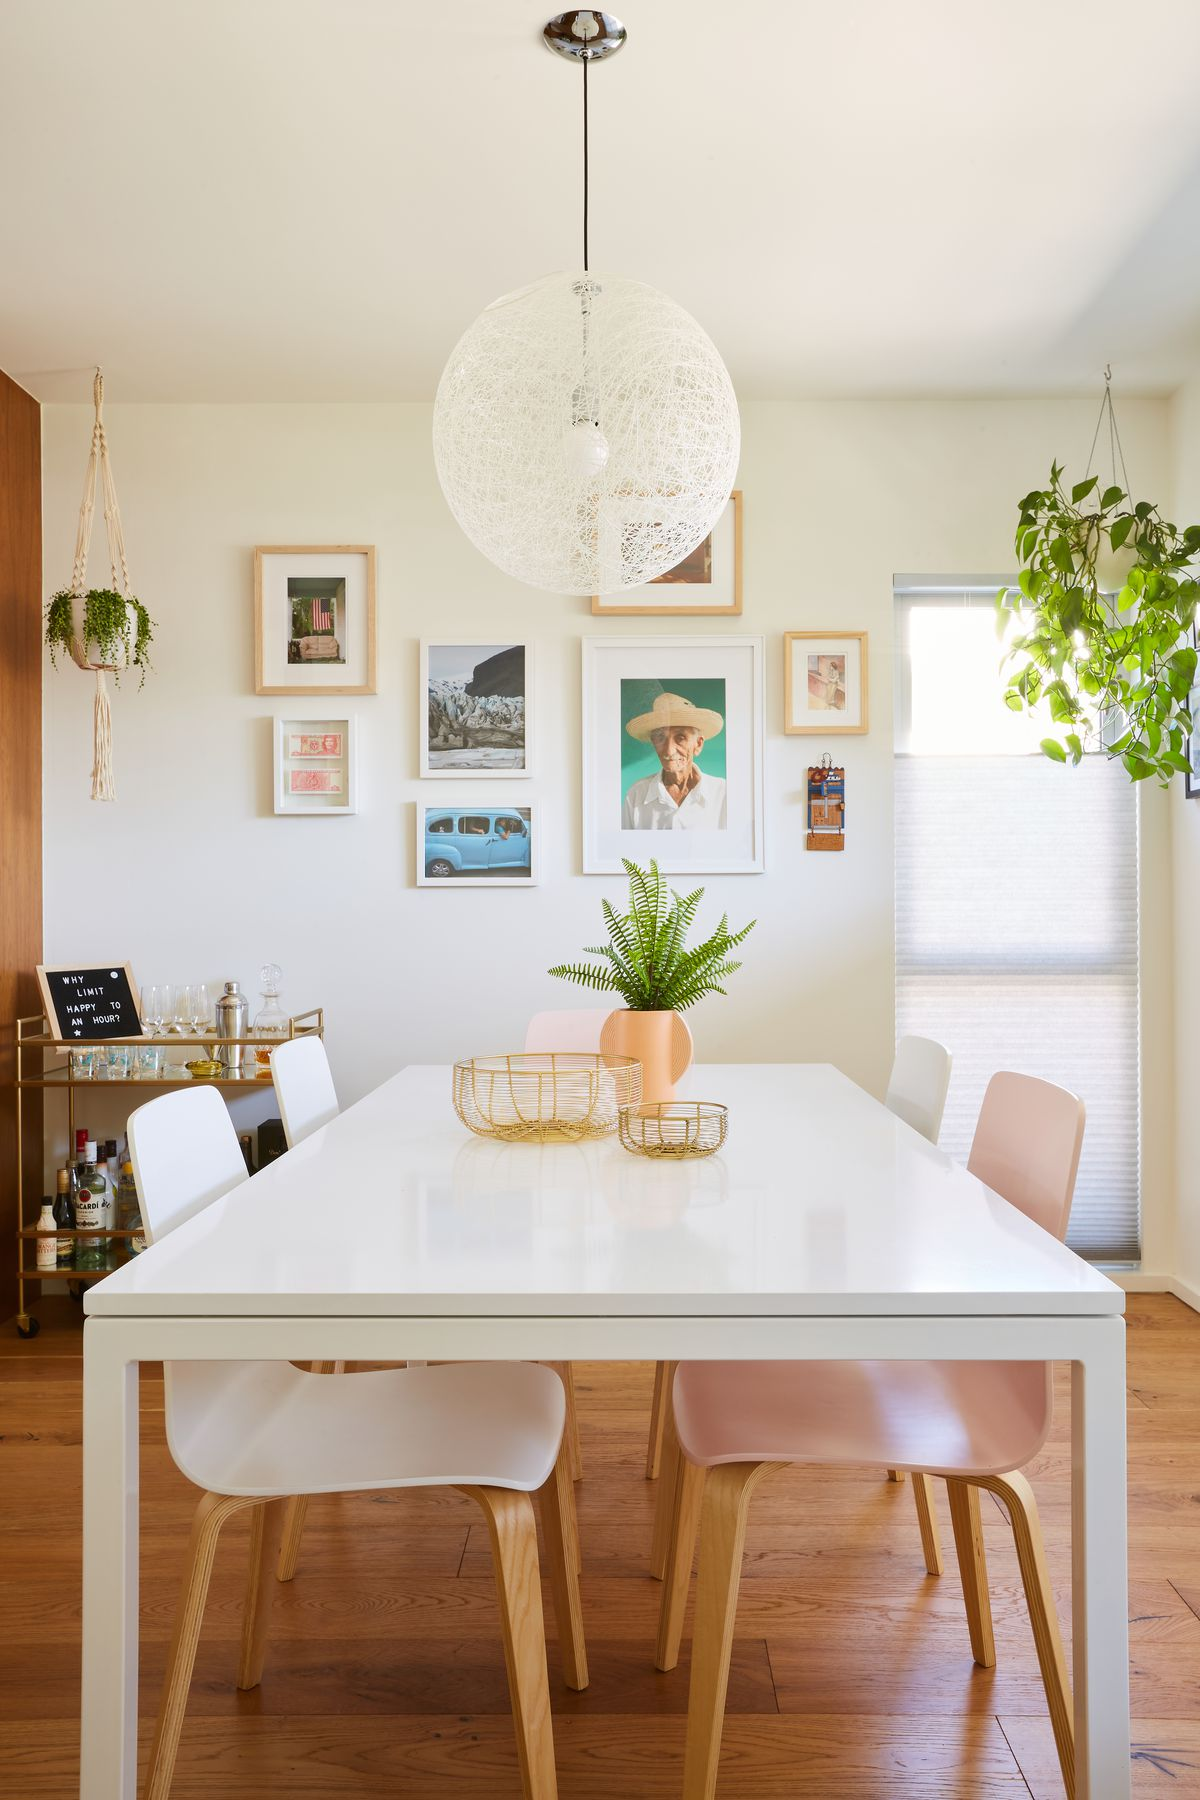 A dining room with a white table and pink and white chairs. There is a white light fixture hanging over the table. Works of art hang on one of the walls.